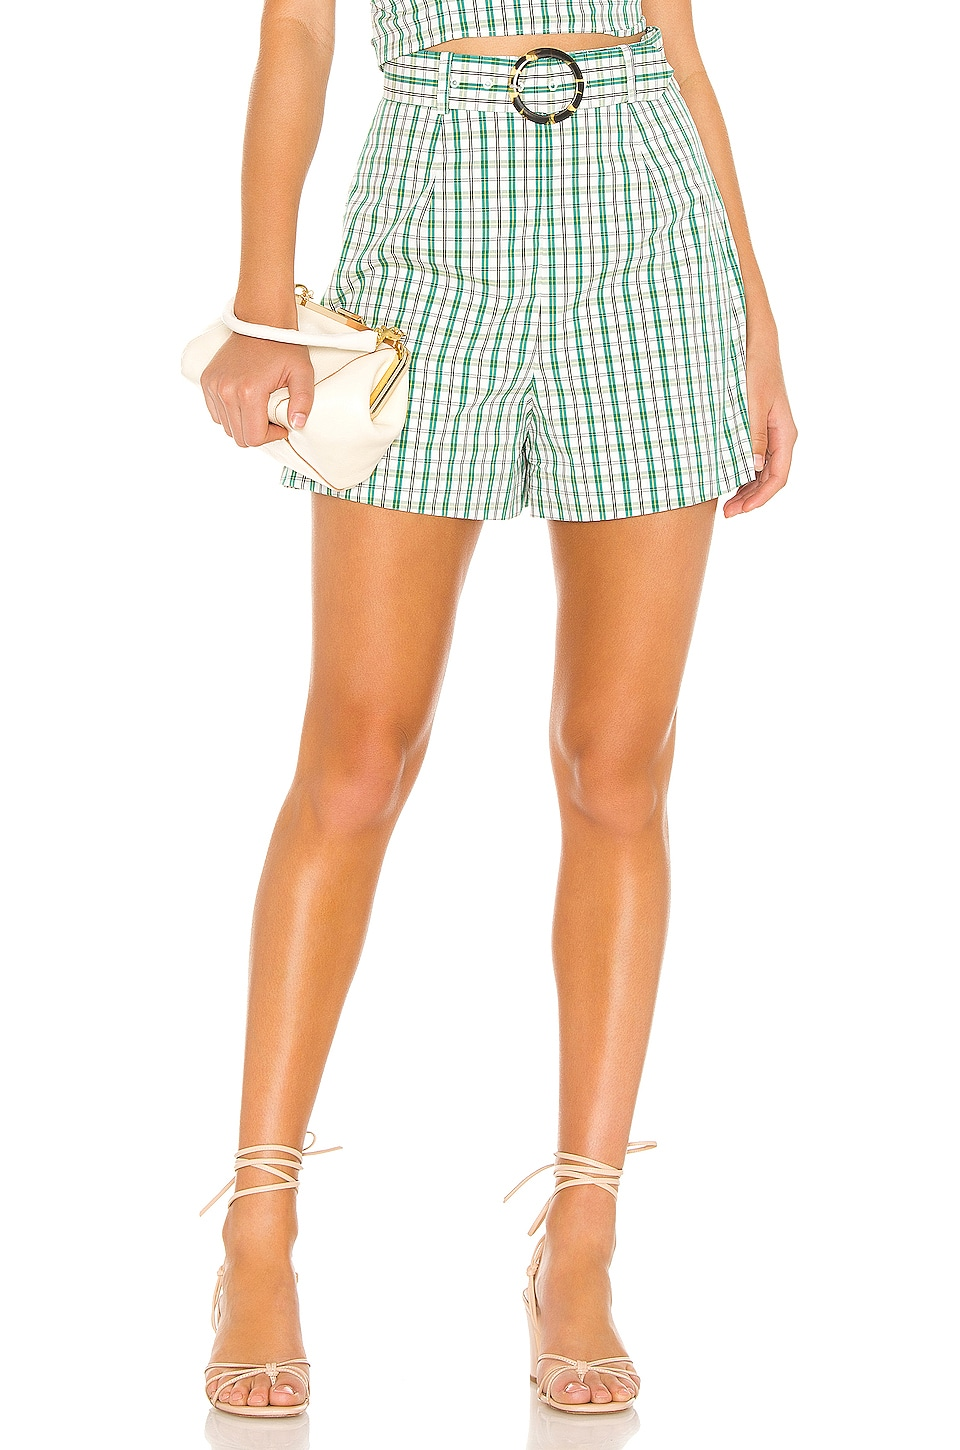 The East Order Gaia Short in Green Plaid